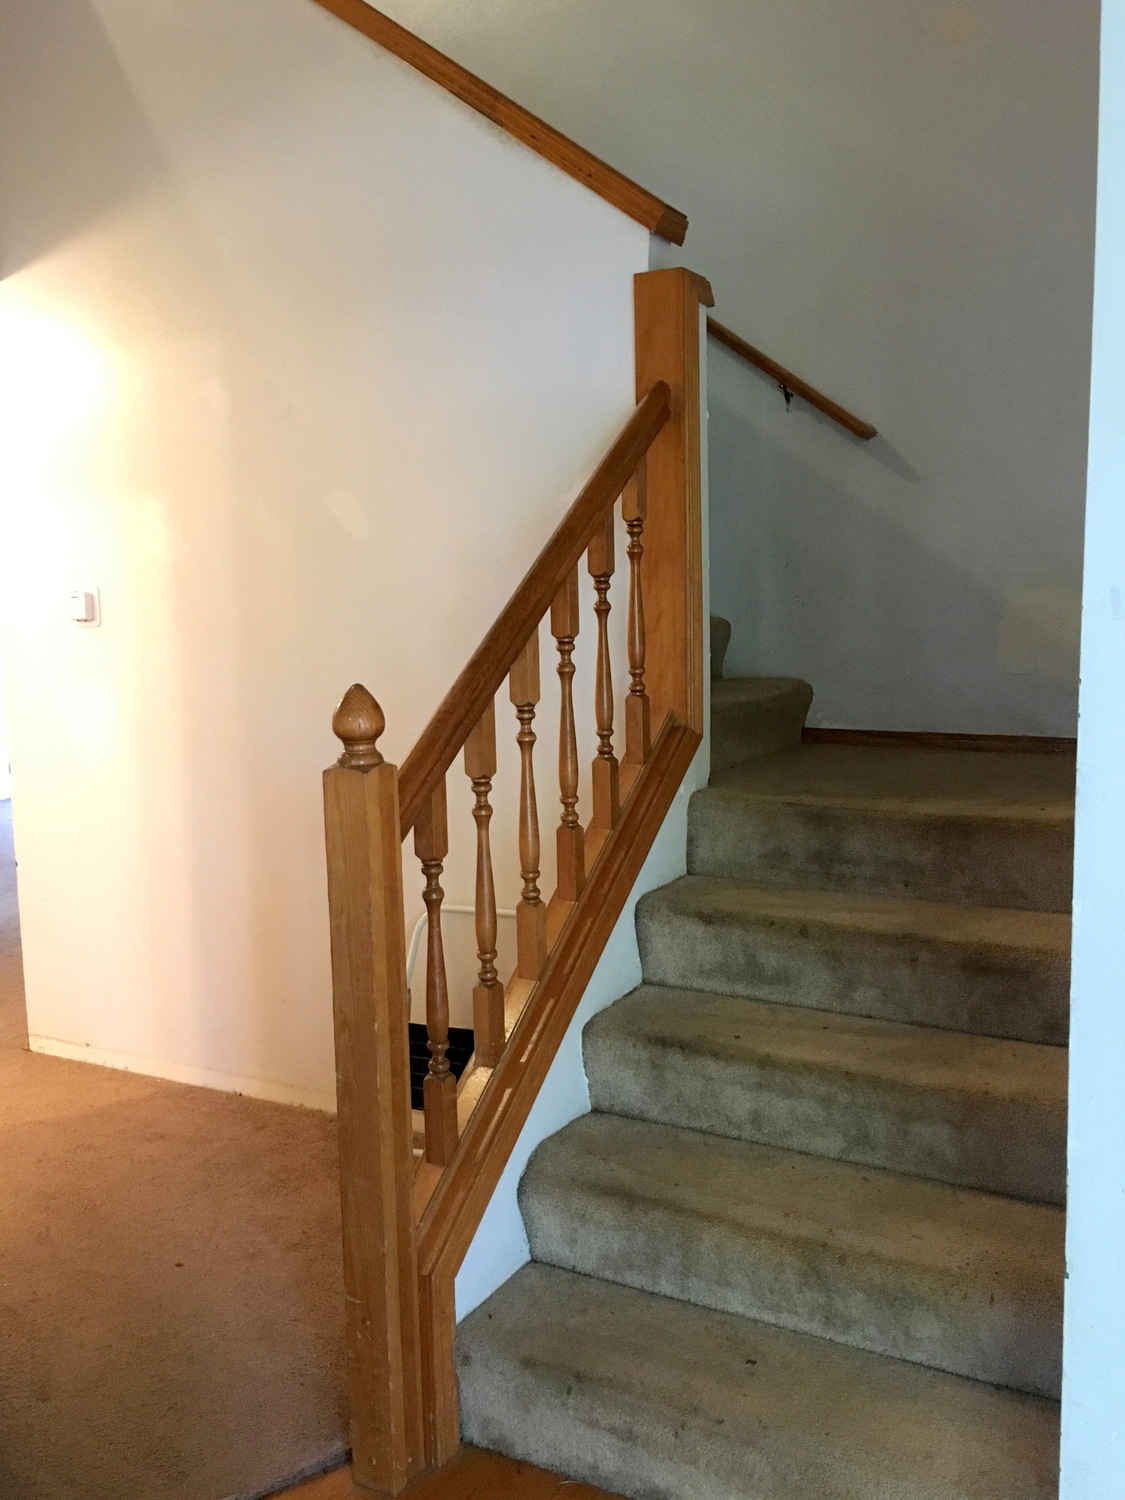 We Ripped The Carpet Out Immediately, Then Redid The Floors, But We Lived  With The Stairs Like This For MONTHS. The First Thing You See When You Walk  In The ...